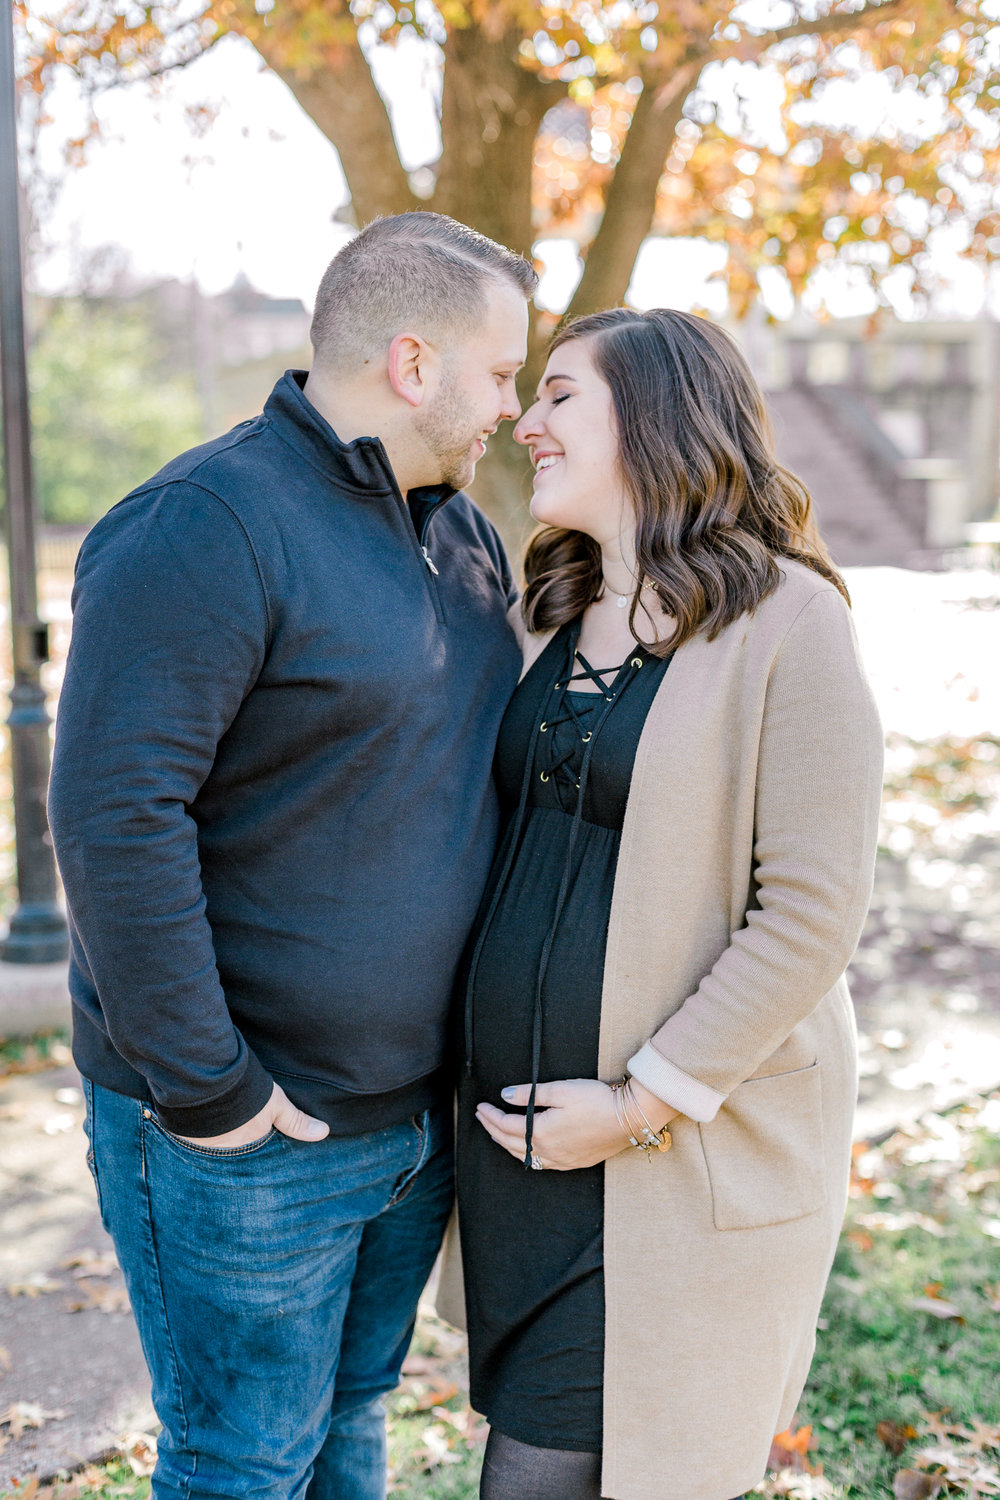 kentucky Fall Family maternity session engagement session wedding and lifestyle photographer Lytle Photo Co (62 of 87).jpg